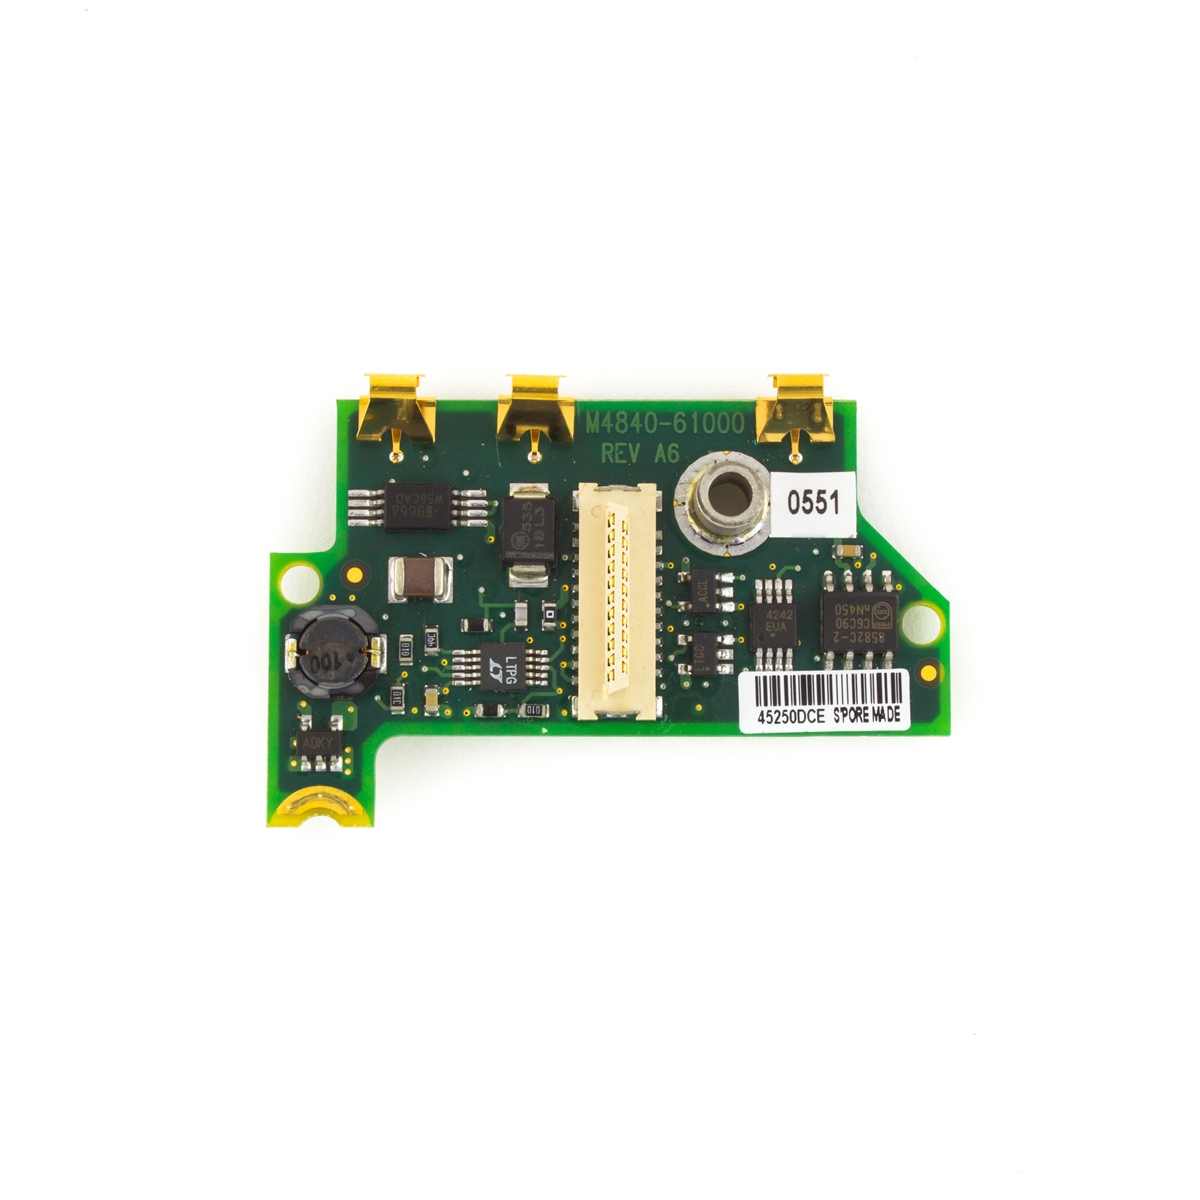 Philips IntelliVue M2601B M4841A TRx+ Telemetry Transmitter S01 S02 S03 AA Power Supply Circuit Board PC Assembly